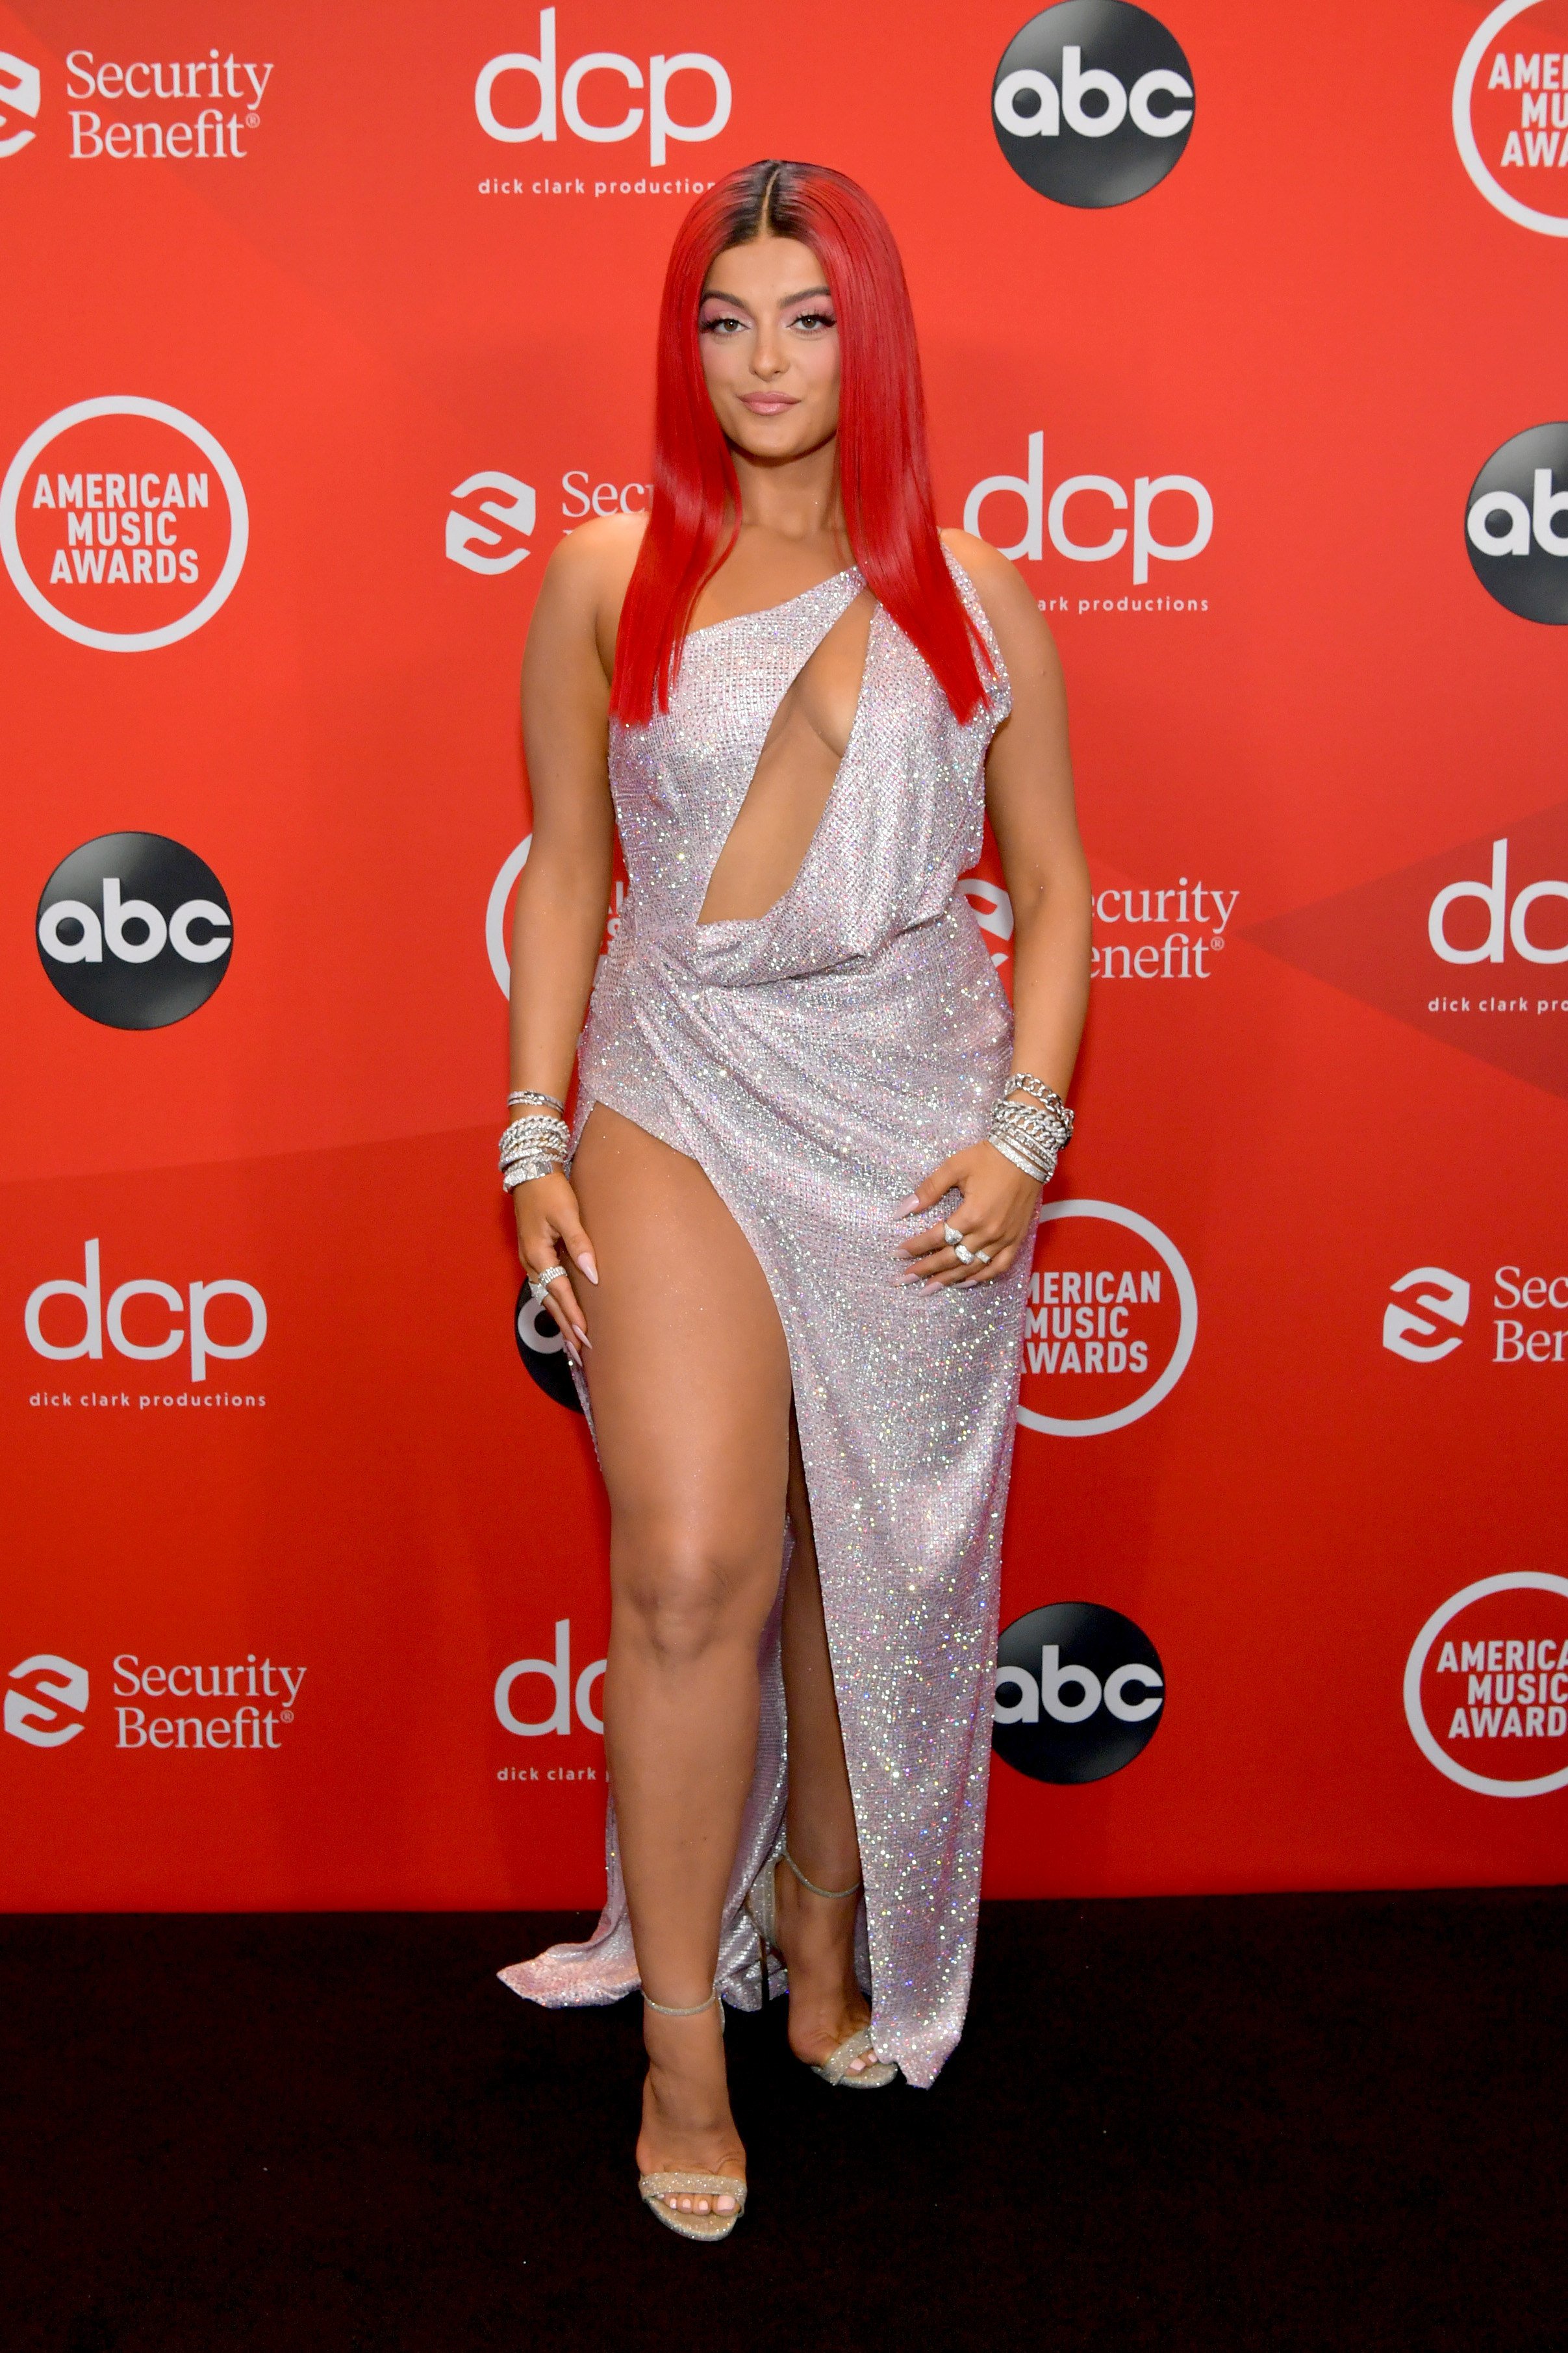 Bebe Rexha attends the 2020 American Music Awards in a sequined gown with thigh-high slit